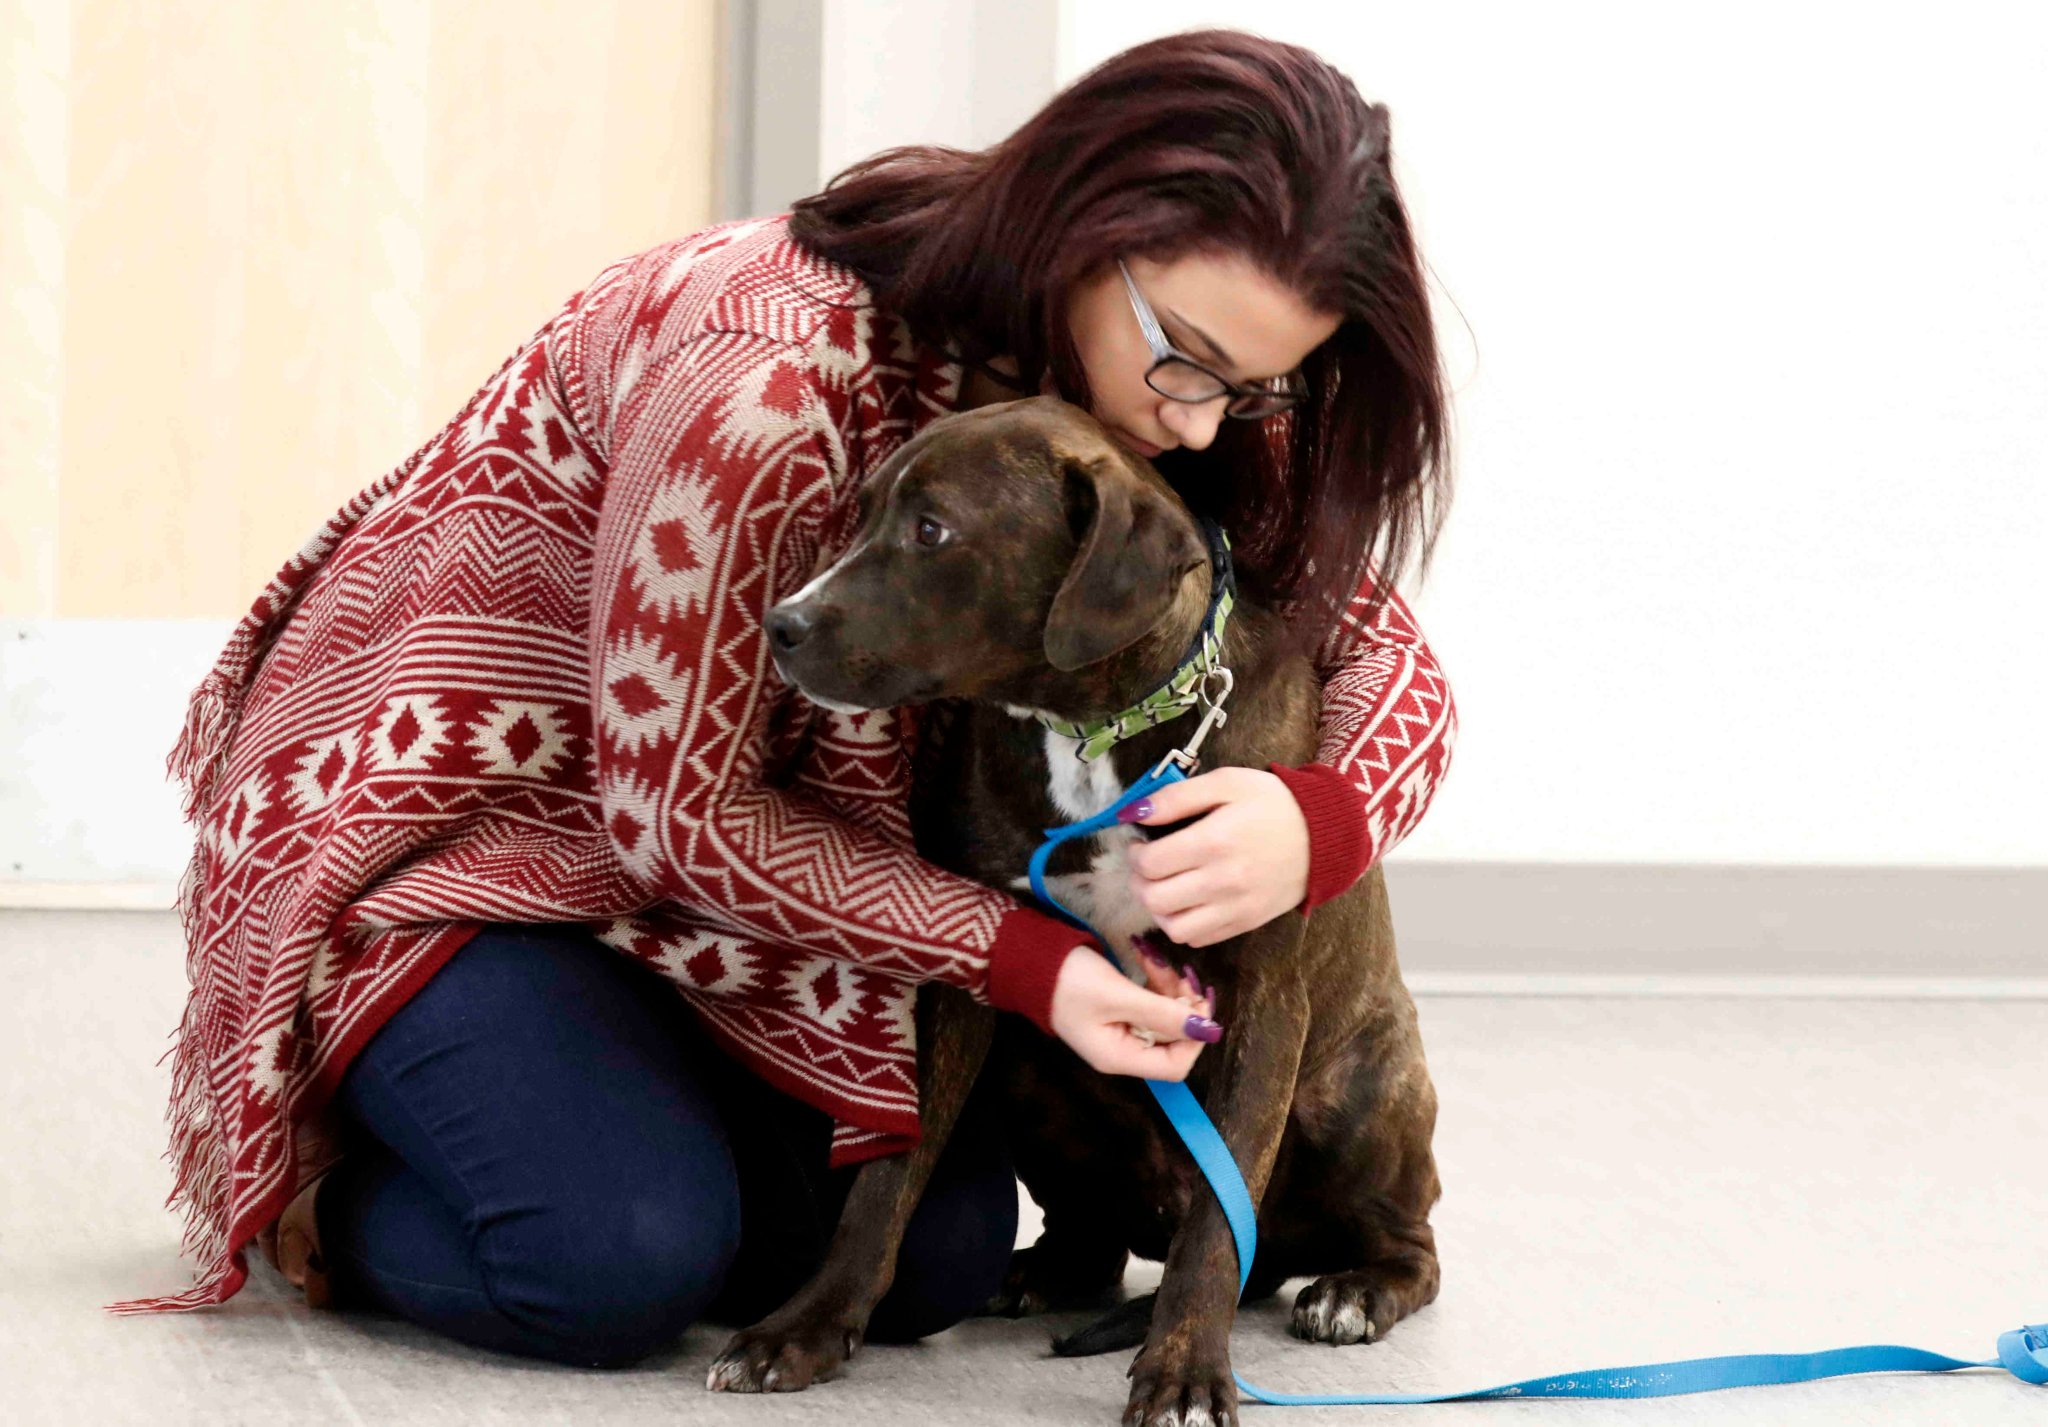 Mercedes Castillo is adopting Jed, the dog she trained while an inmate in Erie County Correctional Facility under Pups at the Pen program. (John Hickey/Buffalo News)